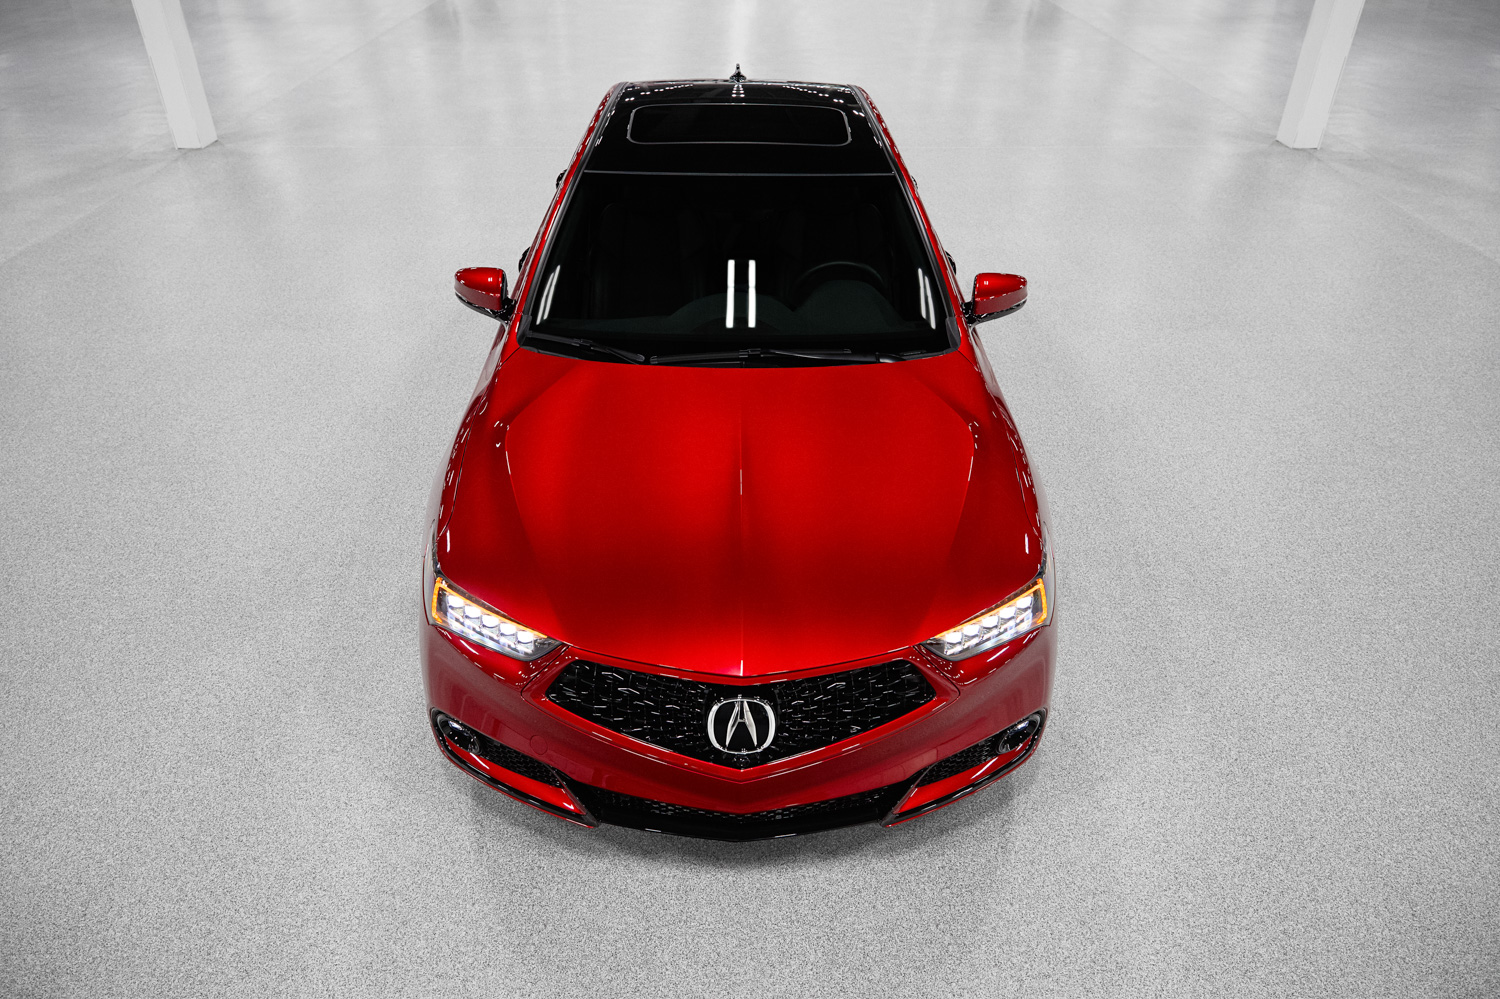 2020 Acura TLX PMC Edition top down